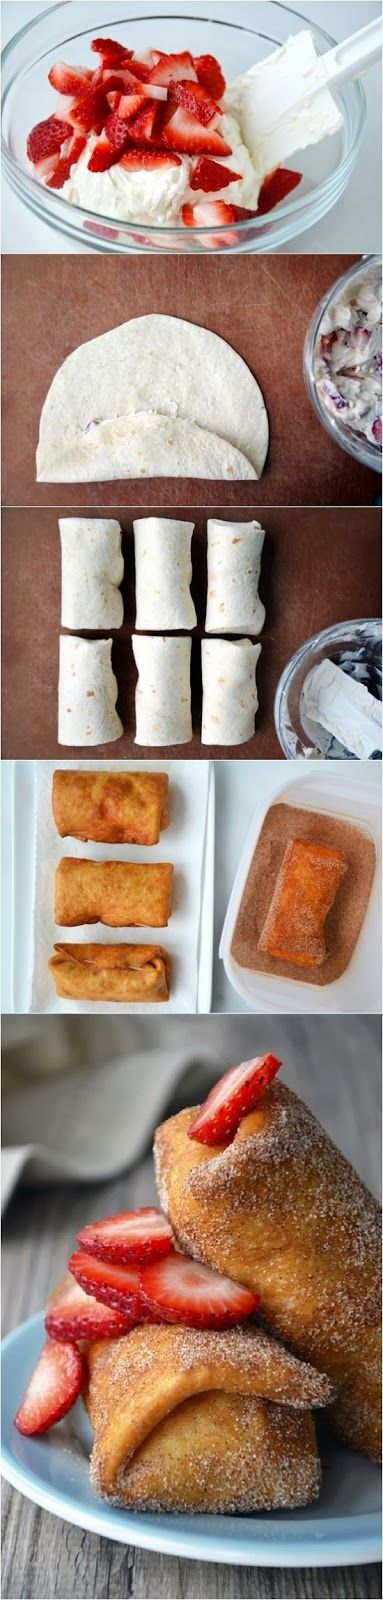 How To Strawberry Cheesecake Chimichangas